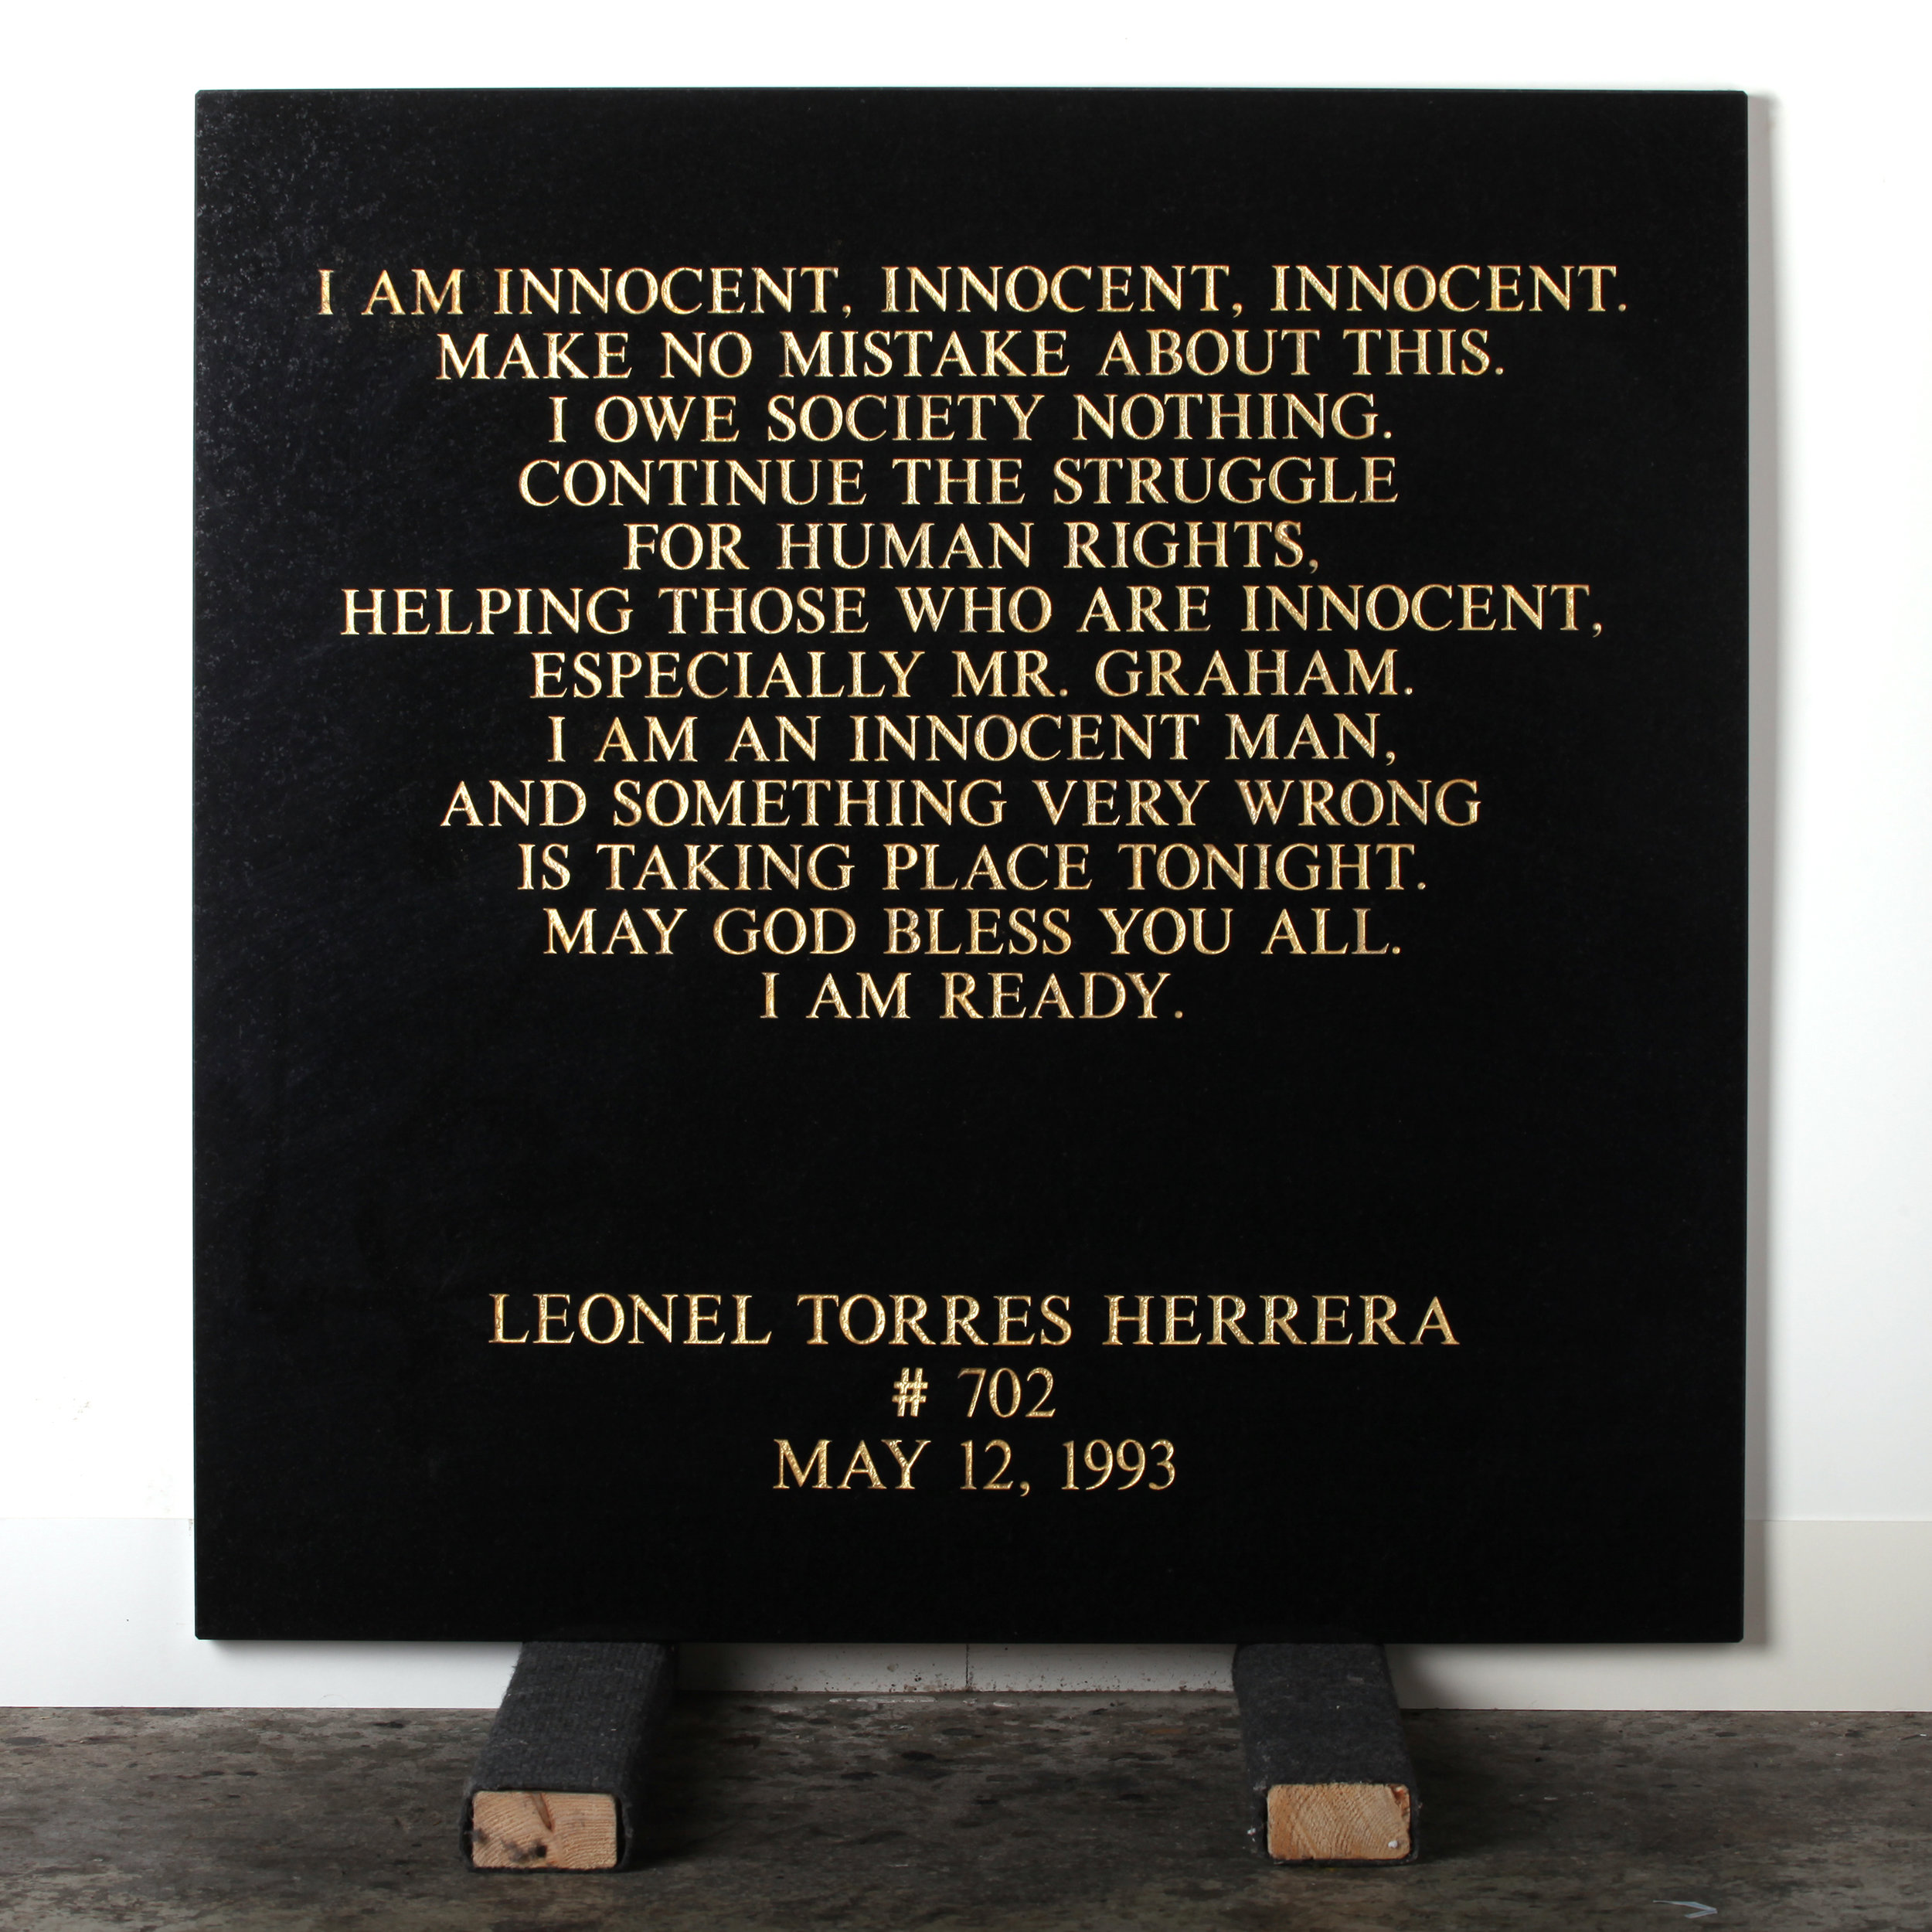 Last Statement /  Plate VI. # 702 Leonel Torres Herrera  Marble / Sandblasted Letters / 24 Carat Gold Leaf 80 x 80 x 3 cm / 31 x 31 x 1,5 in Collection of Per Fronth